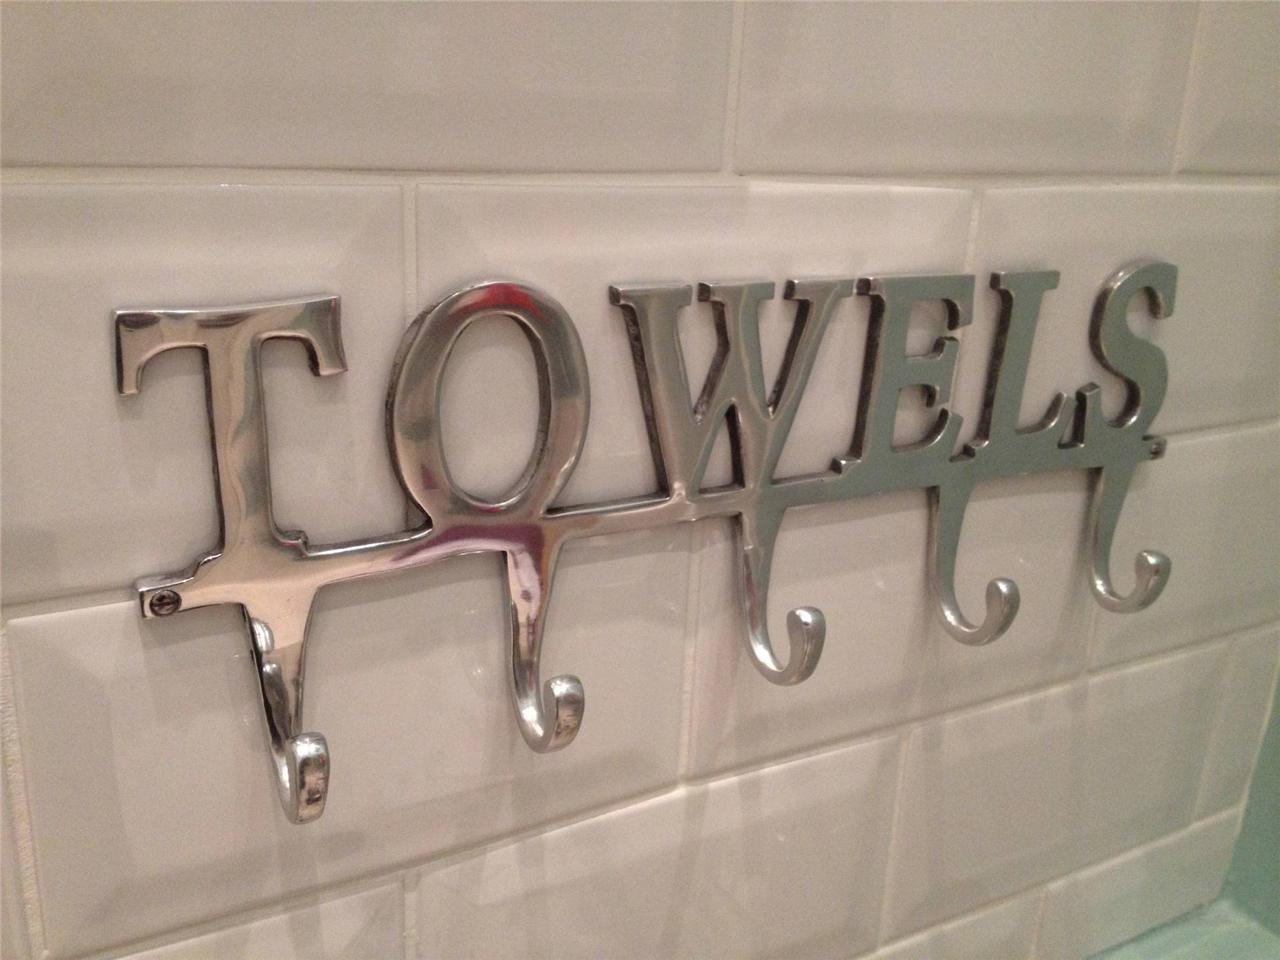 Large Towel Holder Rack Bath Hanger Hooks Wall Mounted Bathroom Aluminium Chrome Ebay